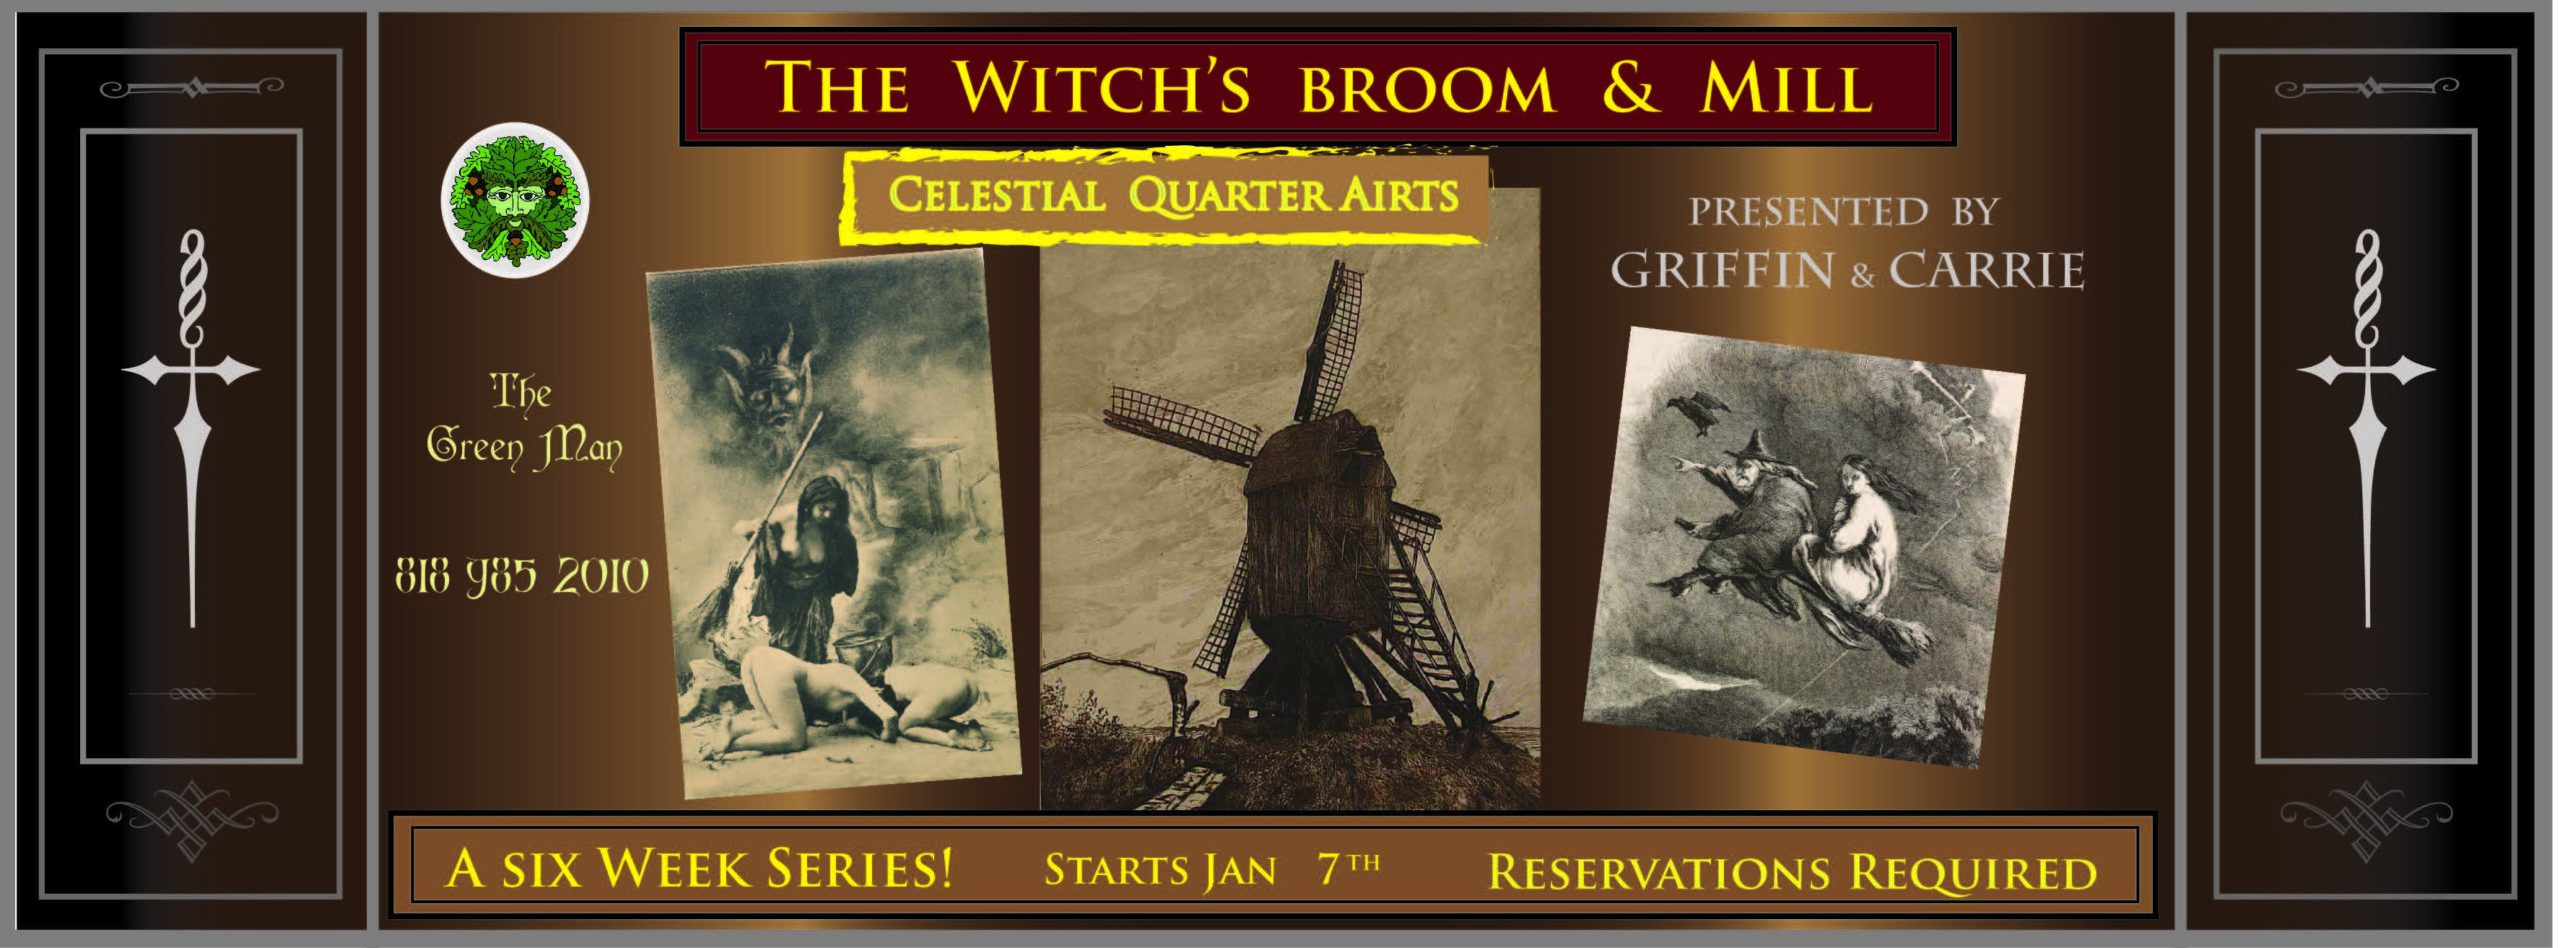 The Witch's Broom & Mill with Griffin and Carrie flyer